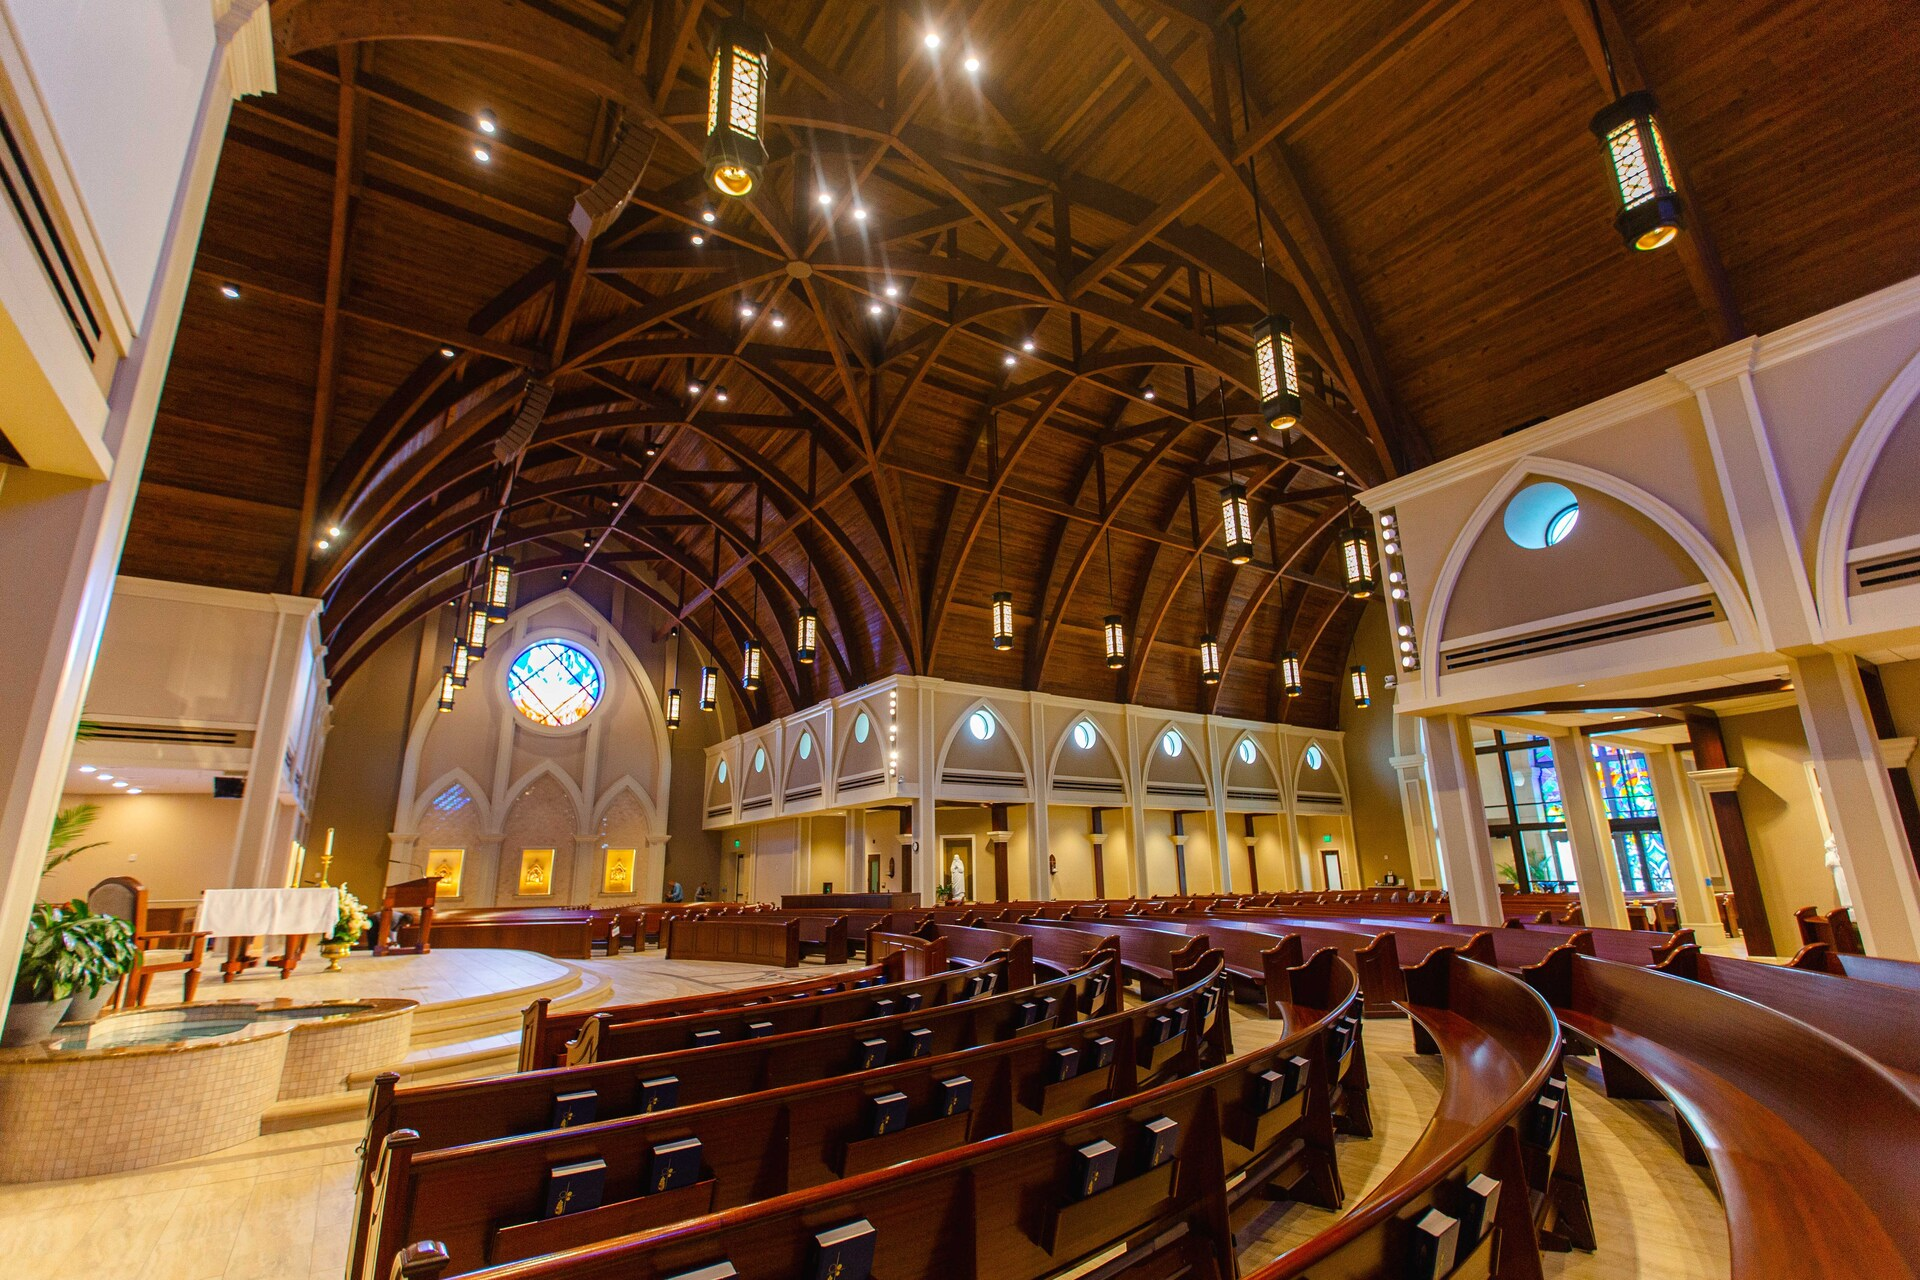 From the decorative trim to the arches, Gator Millworks puts in the time and effort to exceed expectations. St. George Catholic Church is located in Baton Rouge, Louisiana.